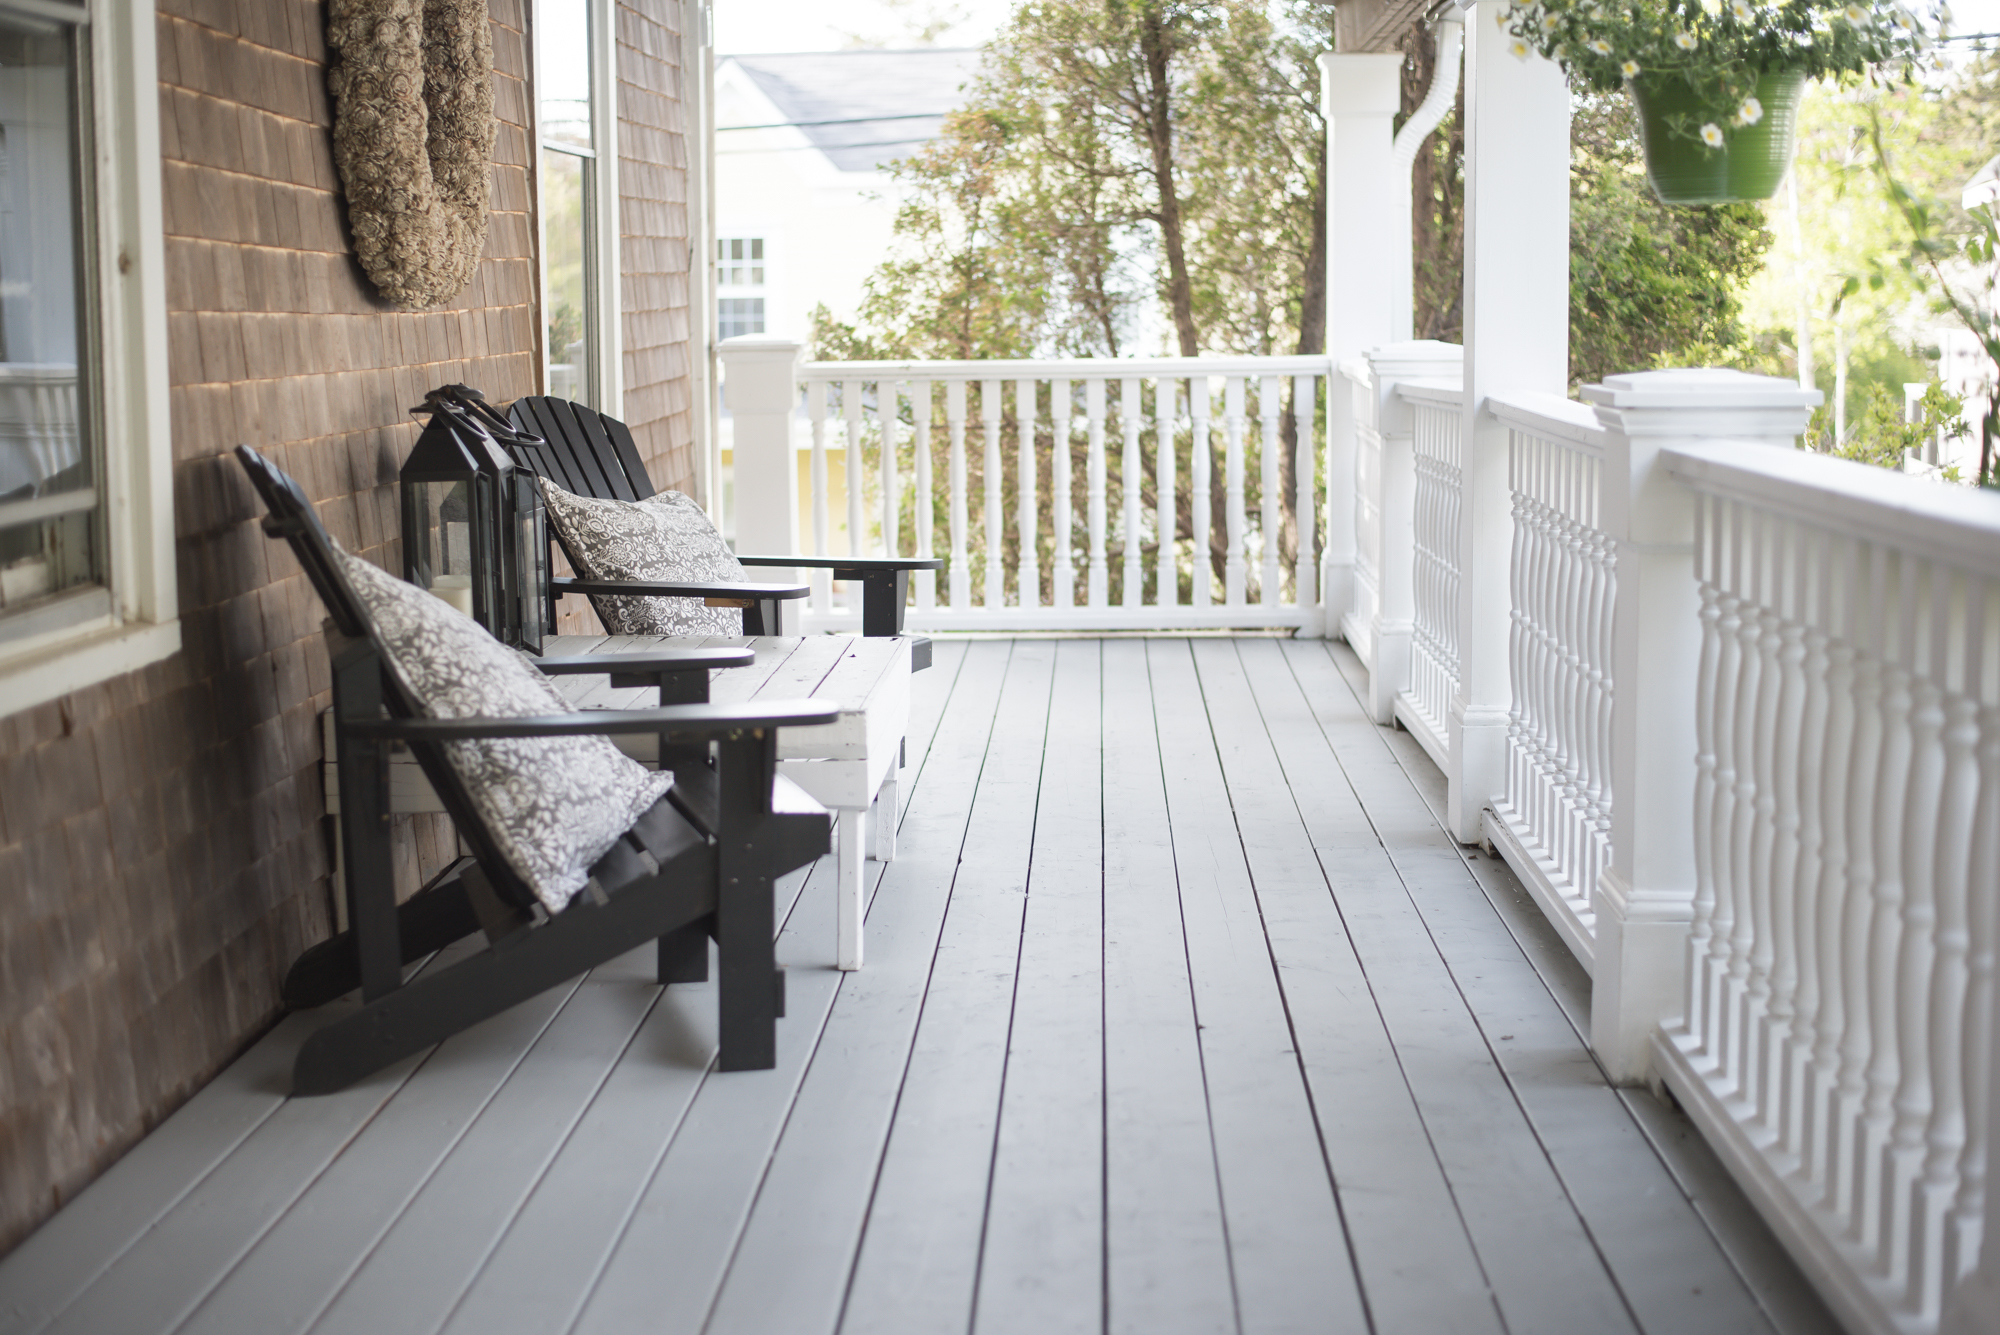 5 Things You Need To Know Before Re-Painting Your Deck